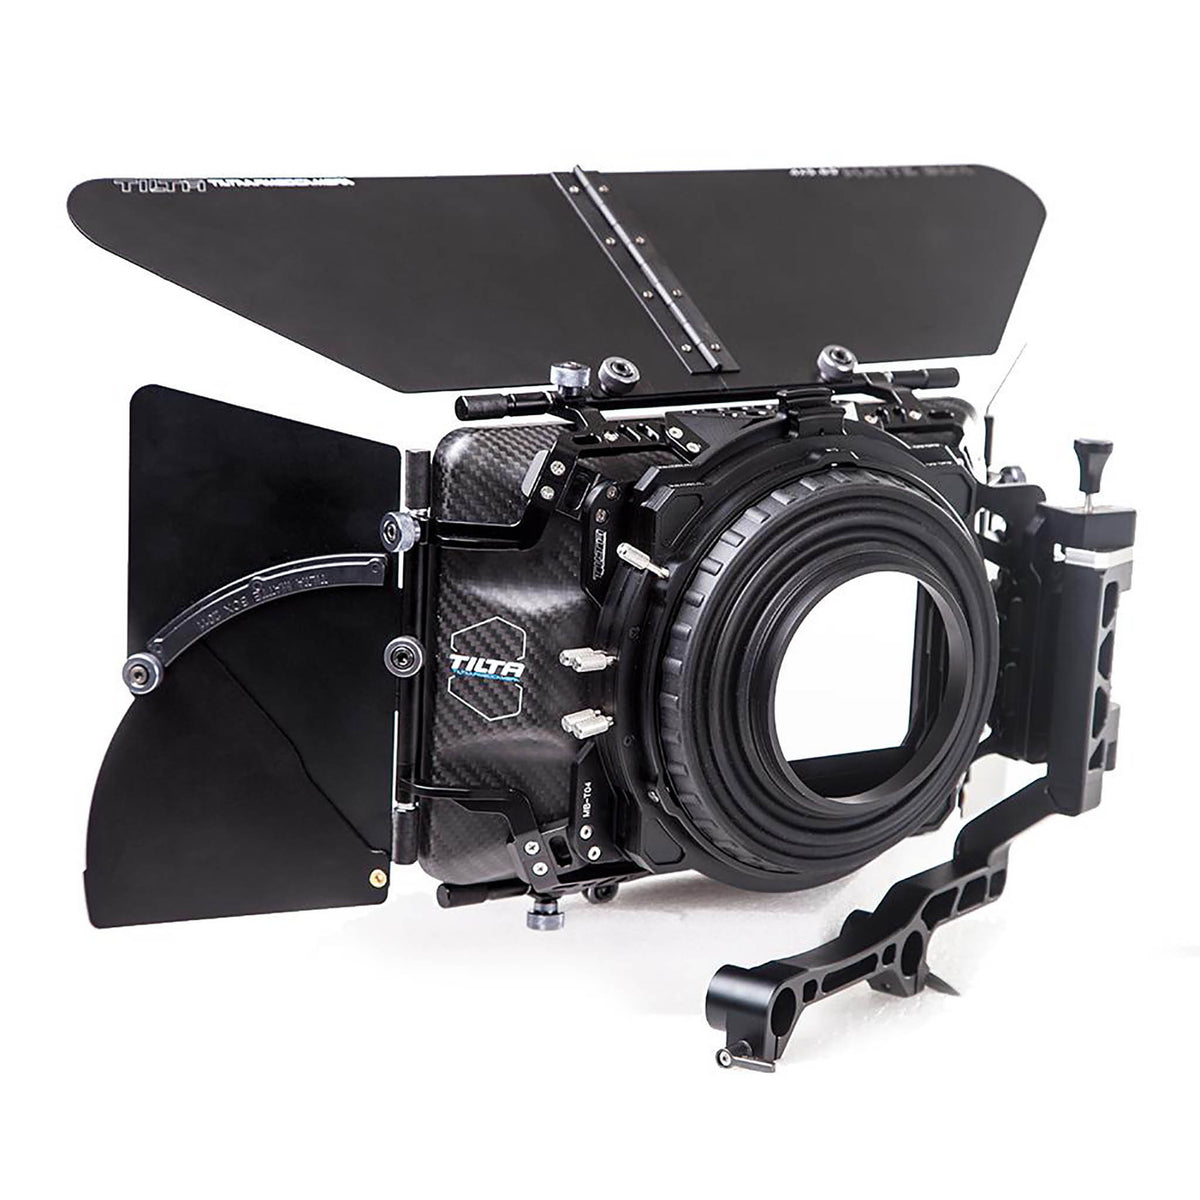 Tilta MB-T04 swing away matte box rear